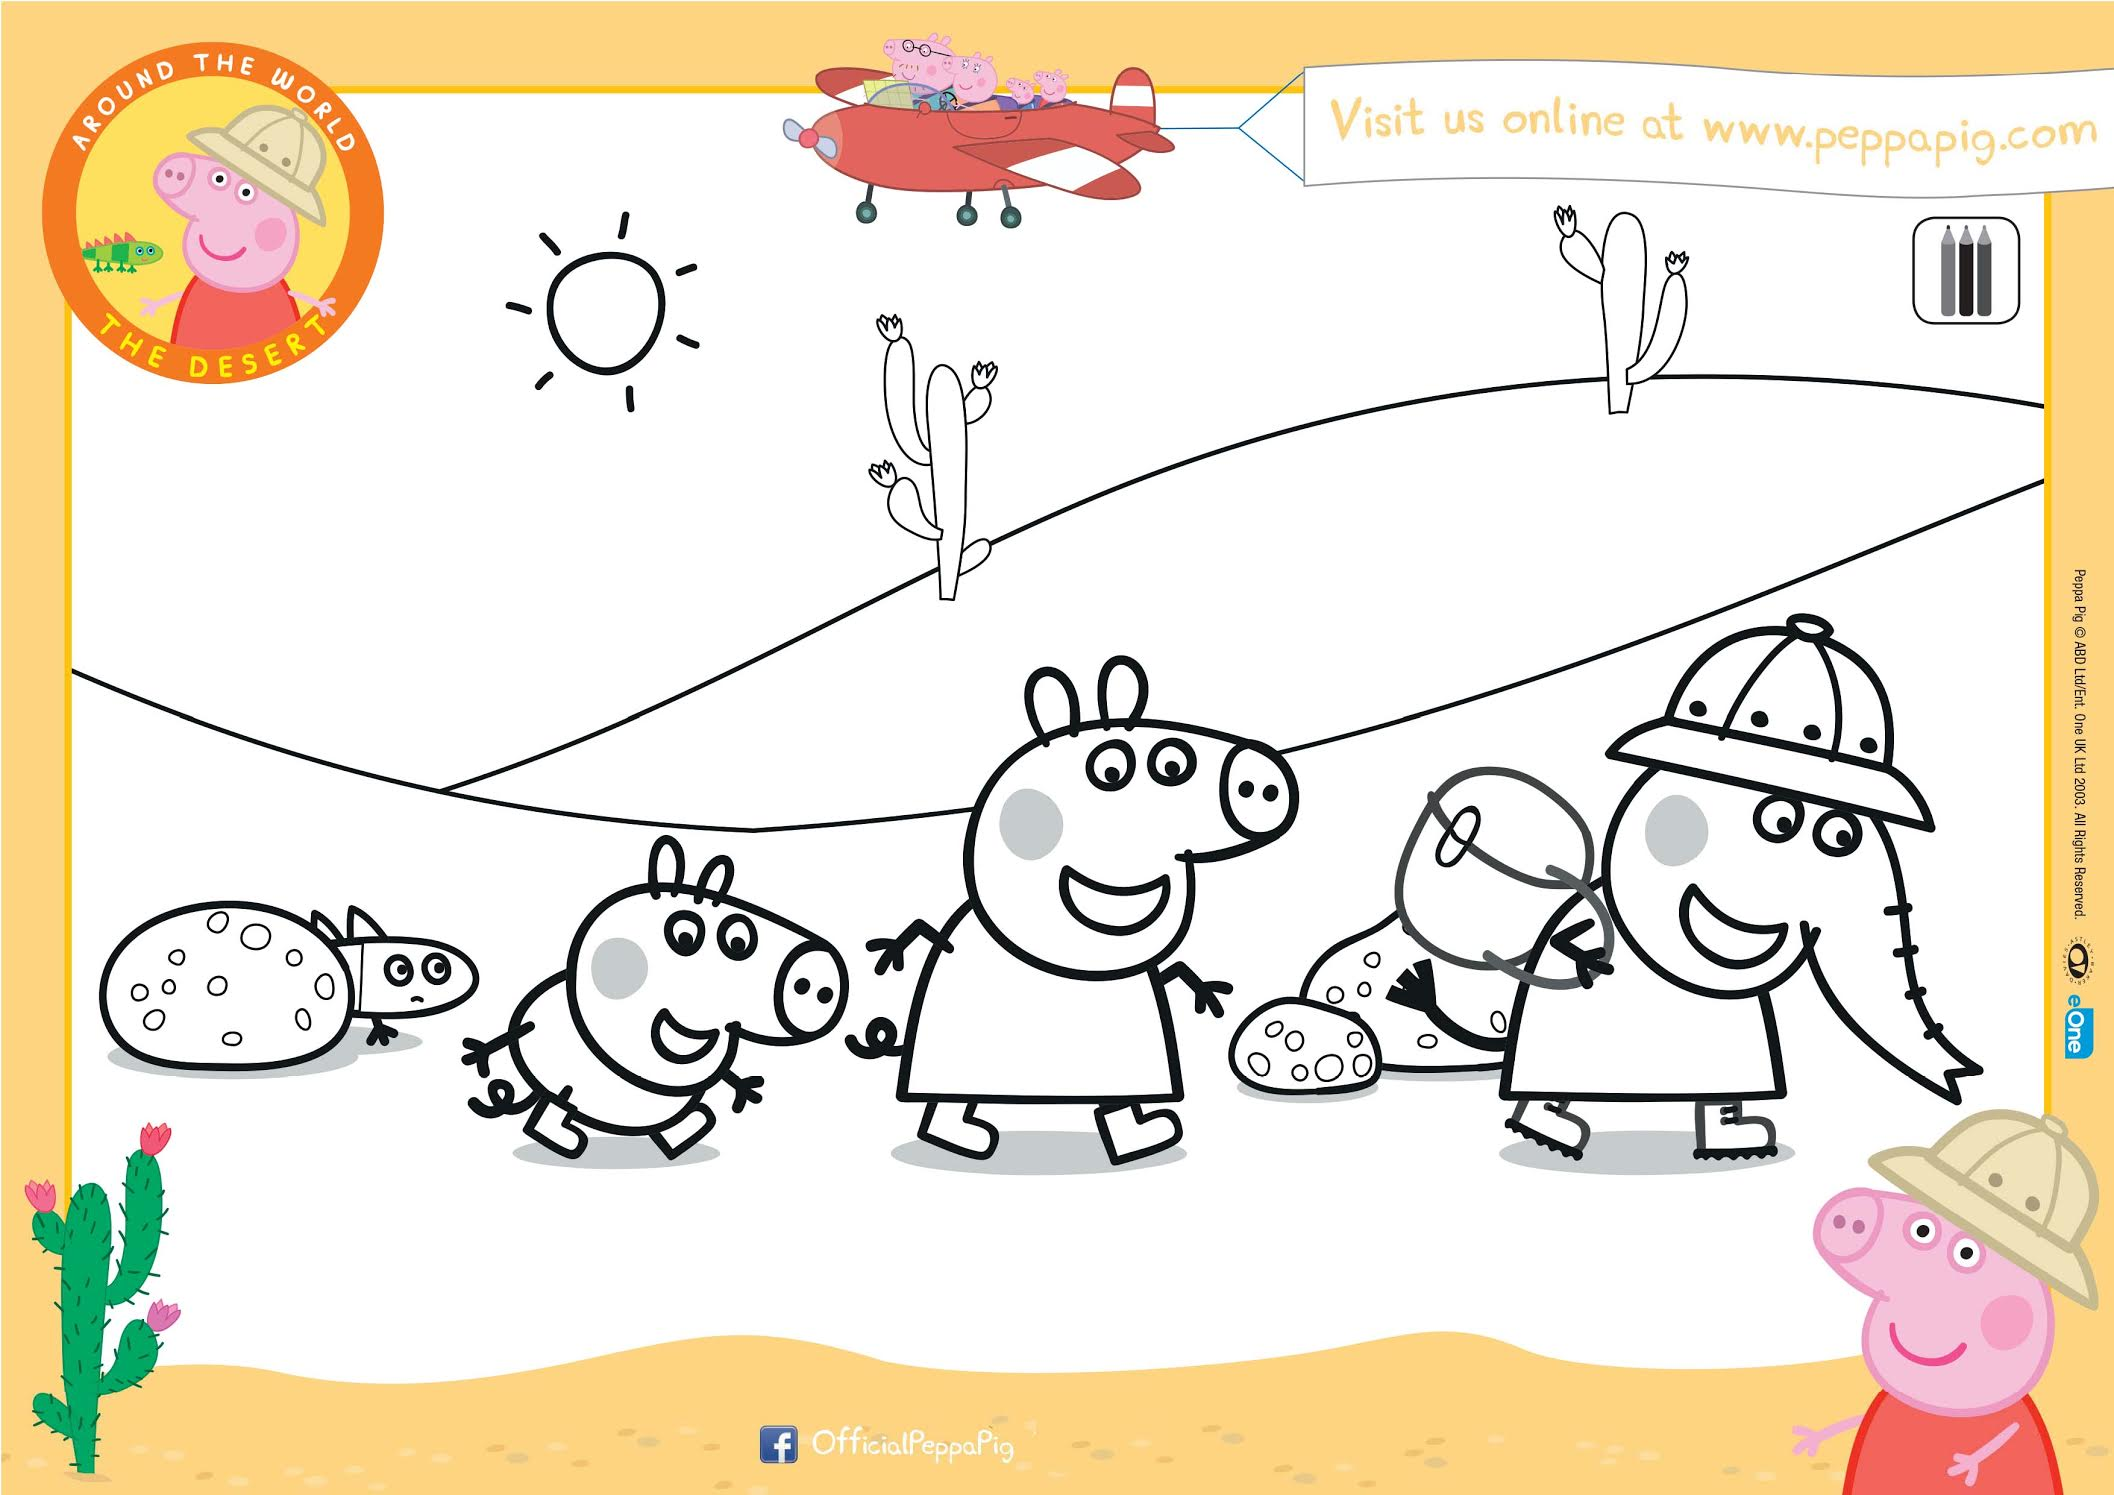 Peppa Pig Colouring Sheet